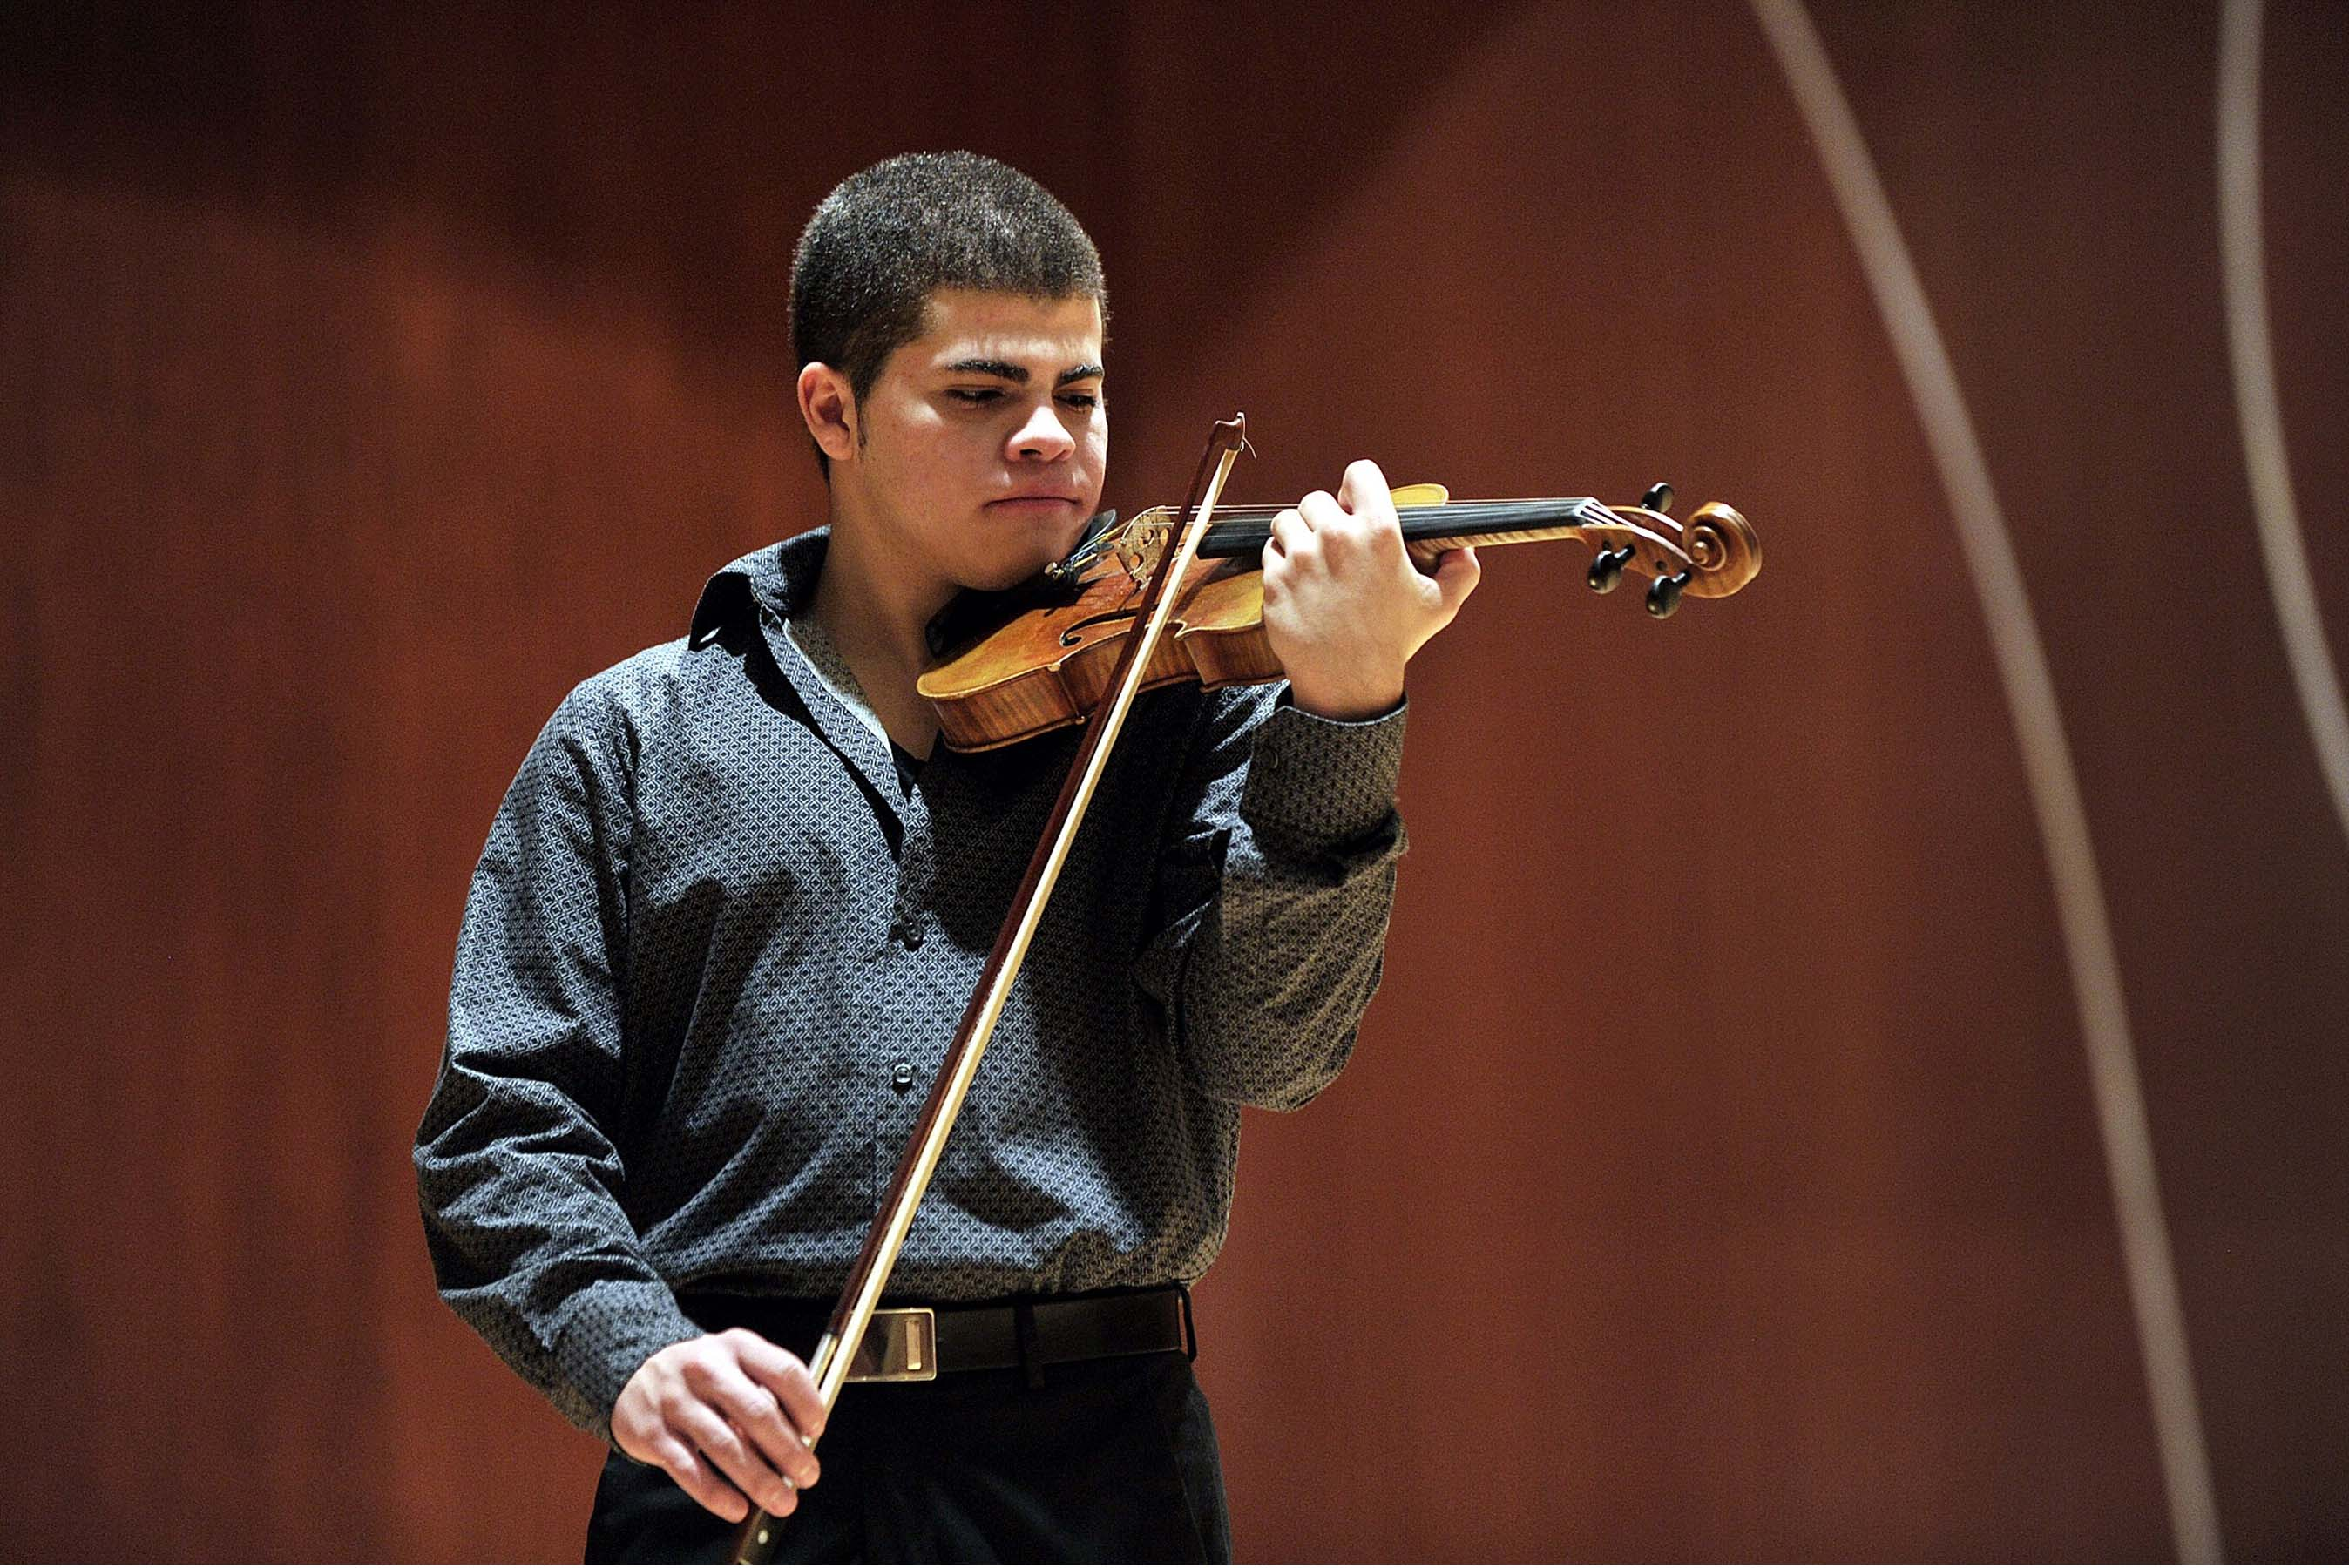 Gabriel Baeza, violin - Photo by Ana Abruña